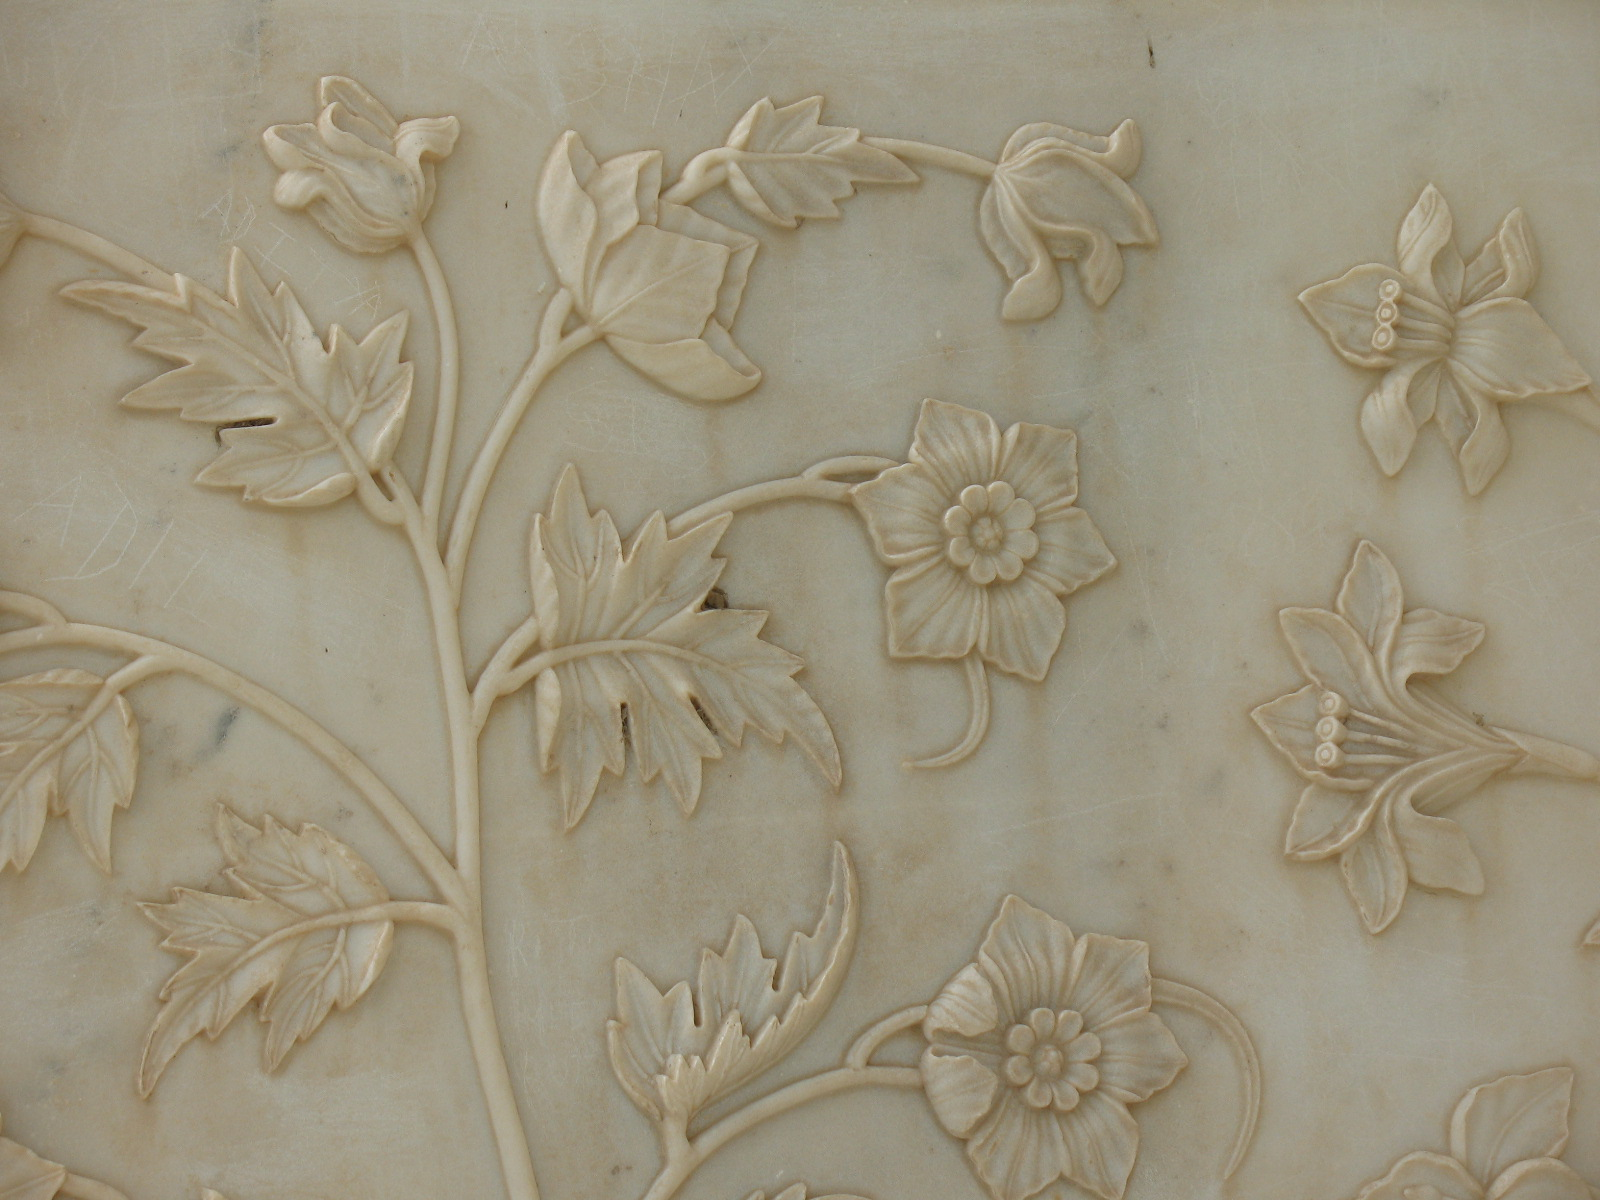 Taj mahal india flowers relief detail 588 :: world all details